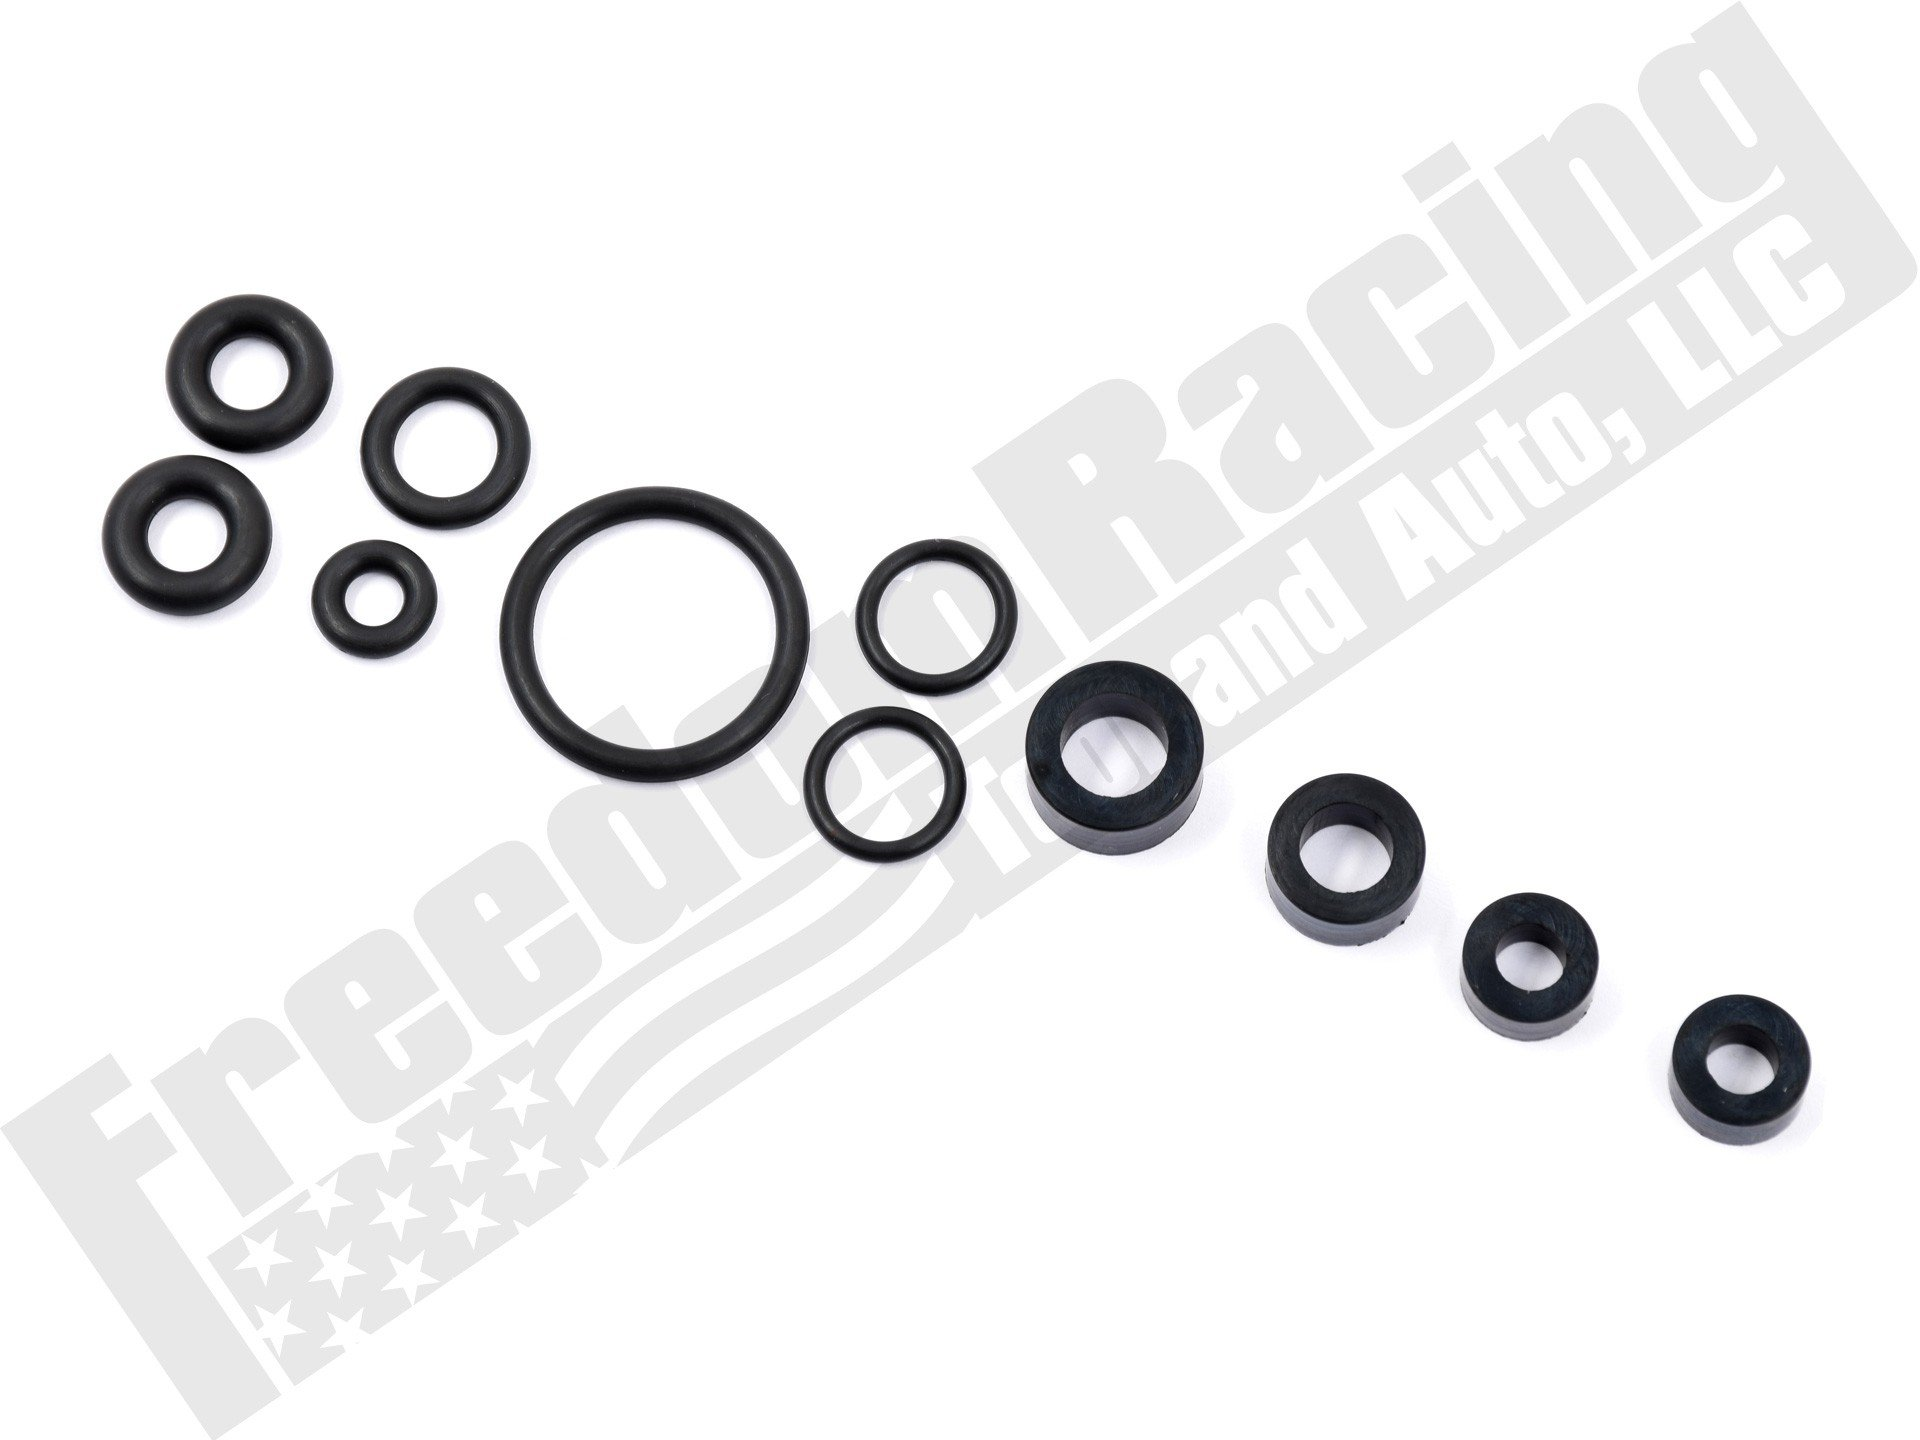 hight resolution of 2000 ford e350 fuel filter housing